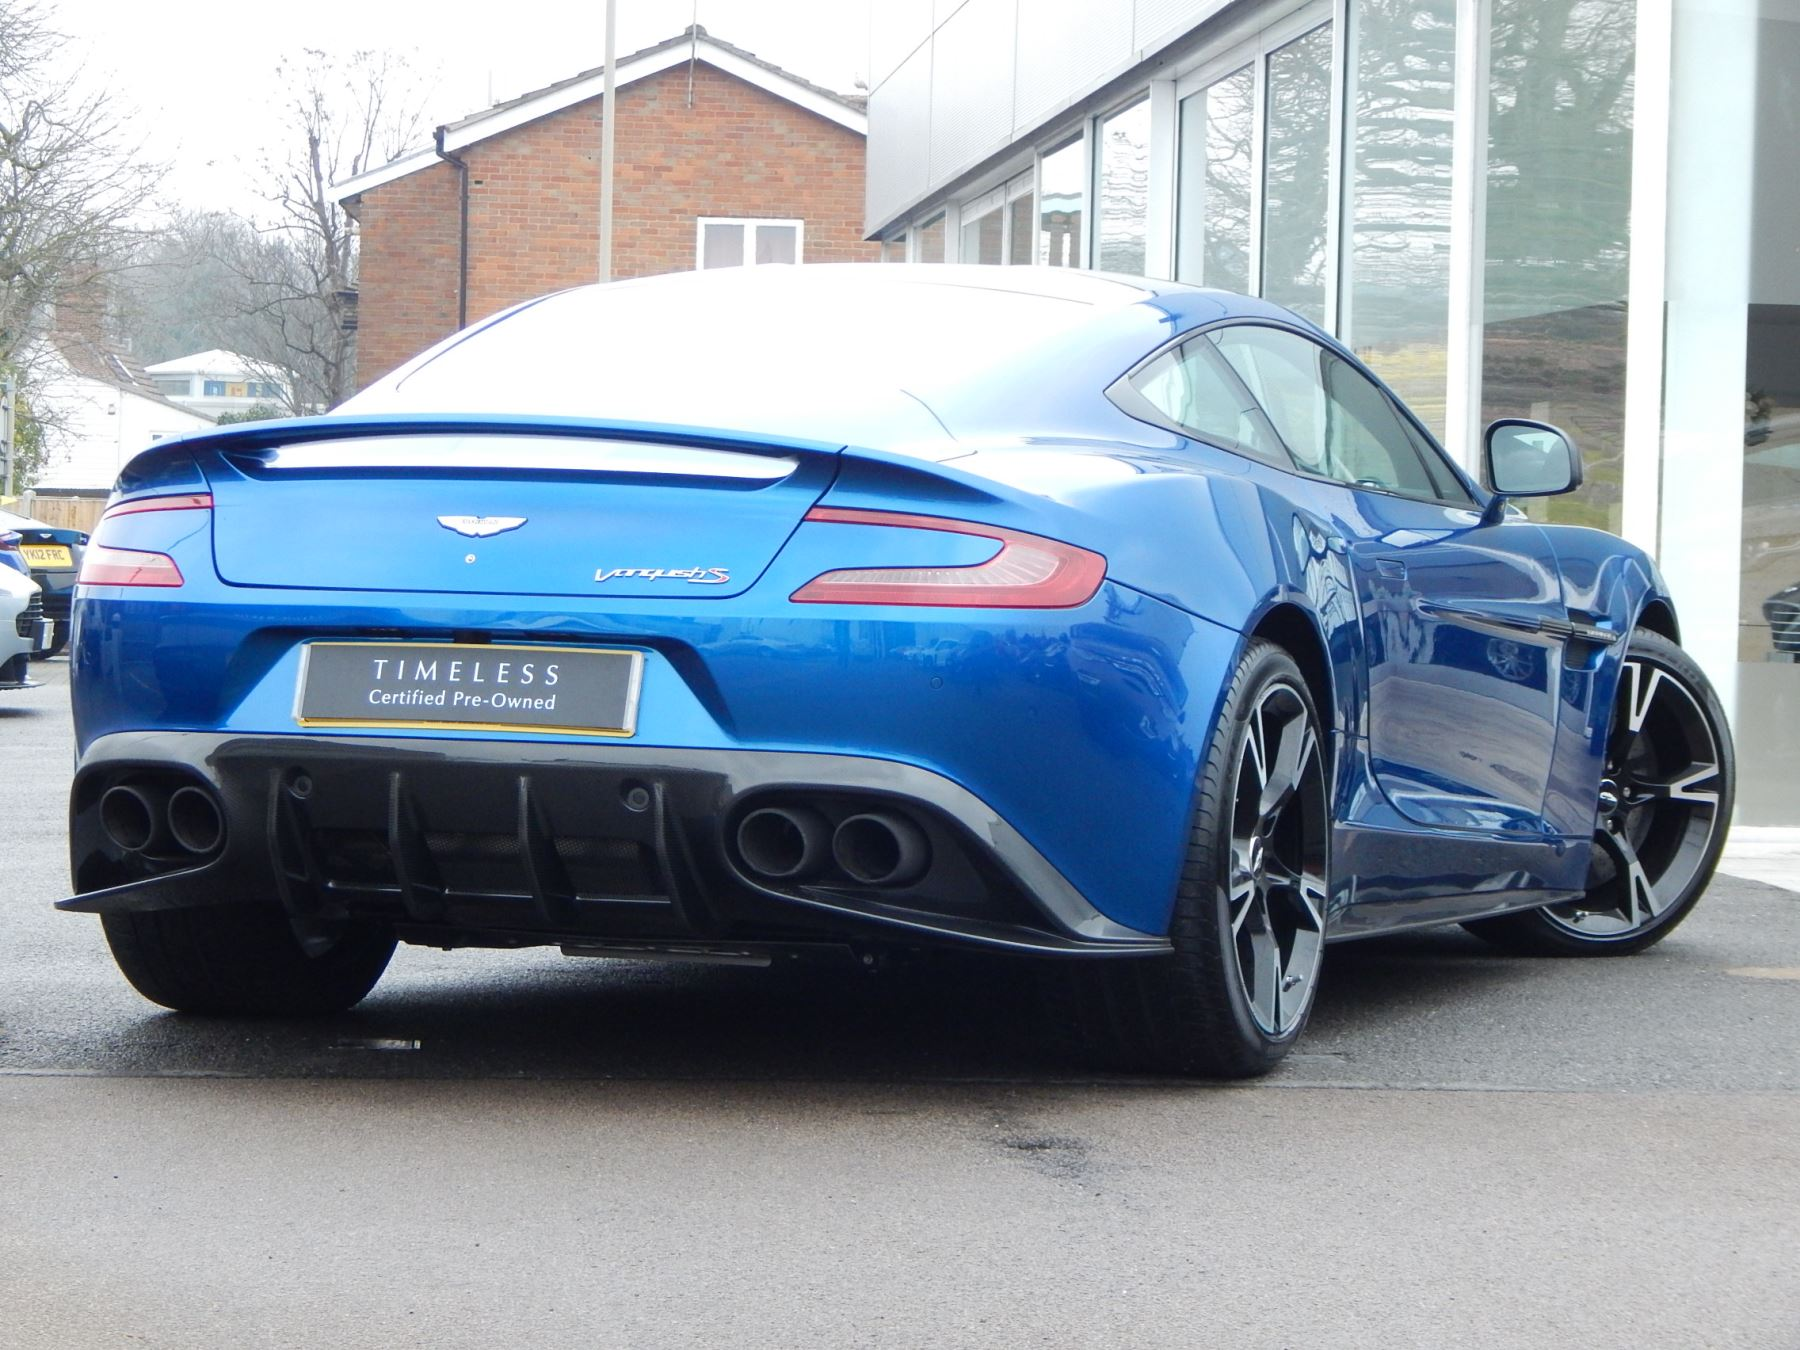 Aston Martin Vanquish V12 [595] S 2+2 2dr Touchtronic image 14